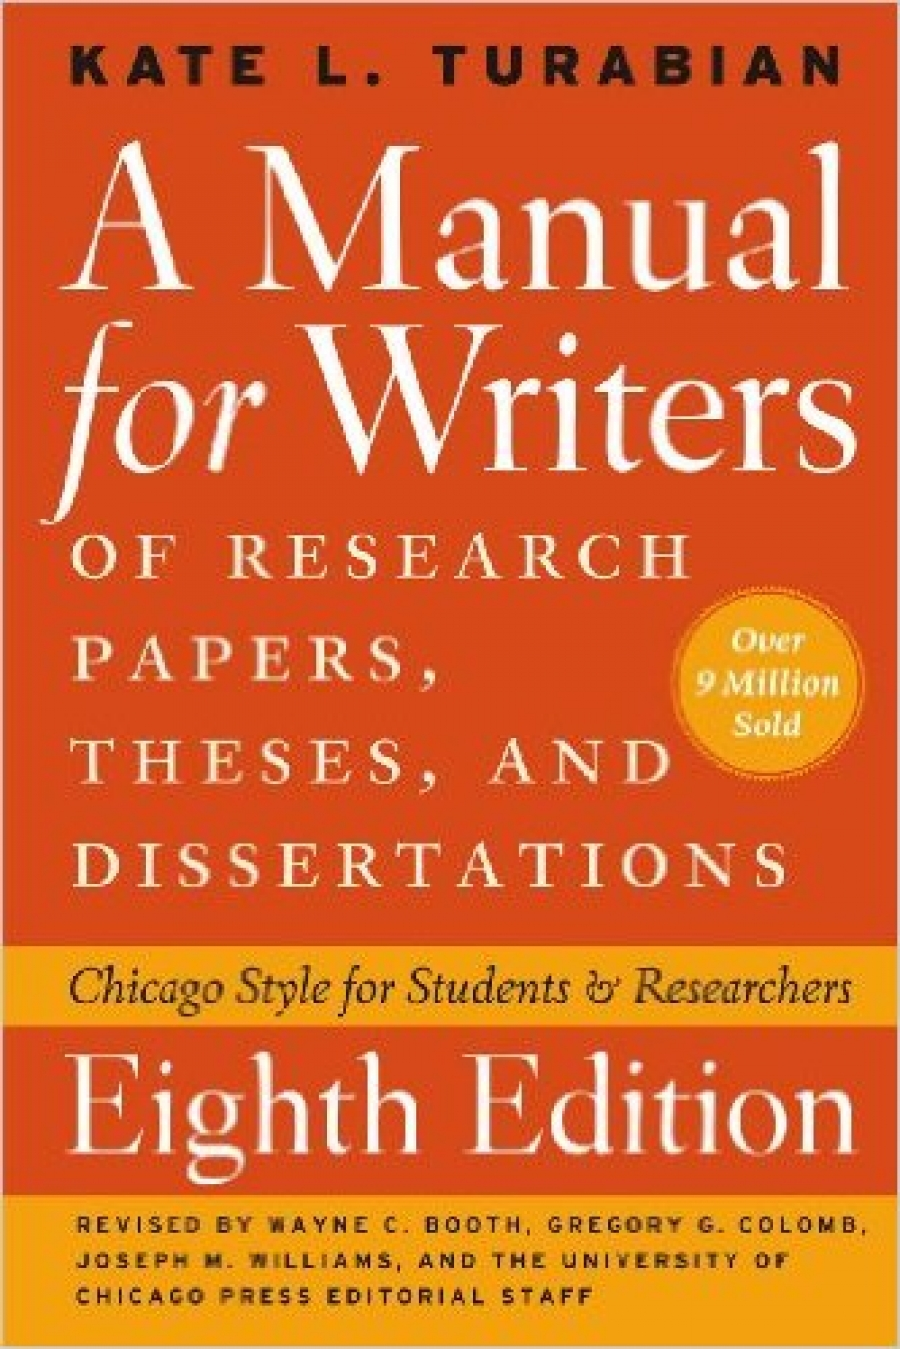 002 3a4499a4c30d6f082d254099c90f2c24 Xl Research Paper Manual For Writers Of Papers Theses And Dissertations 8th Staggering A Edition Pdf Full